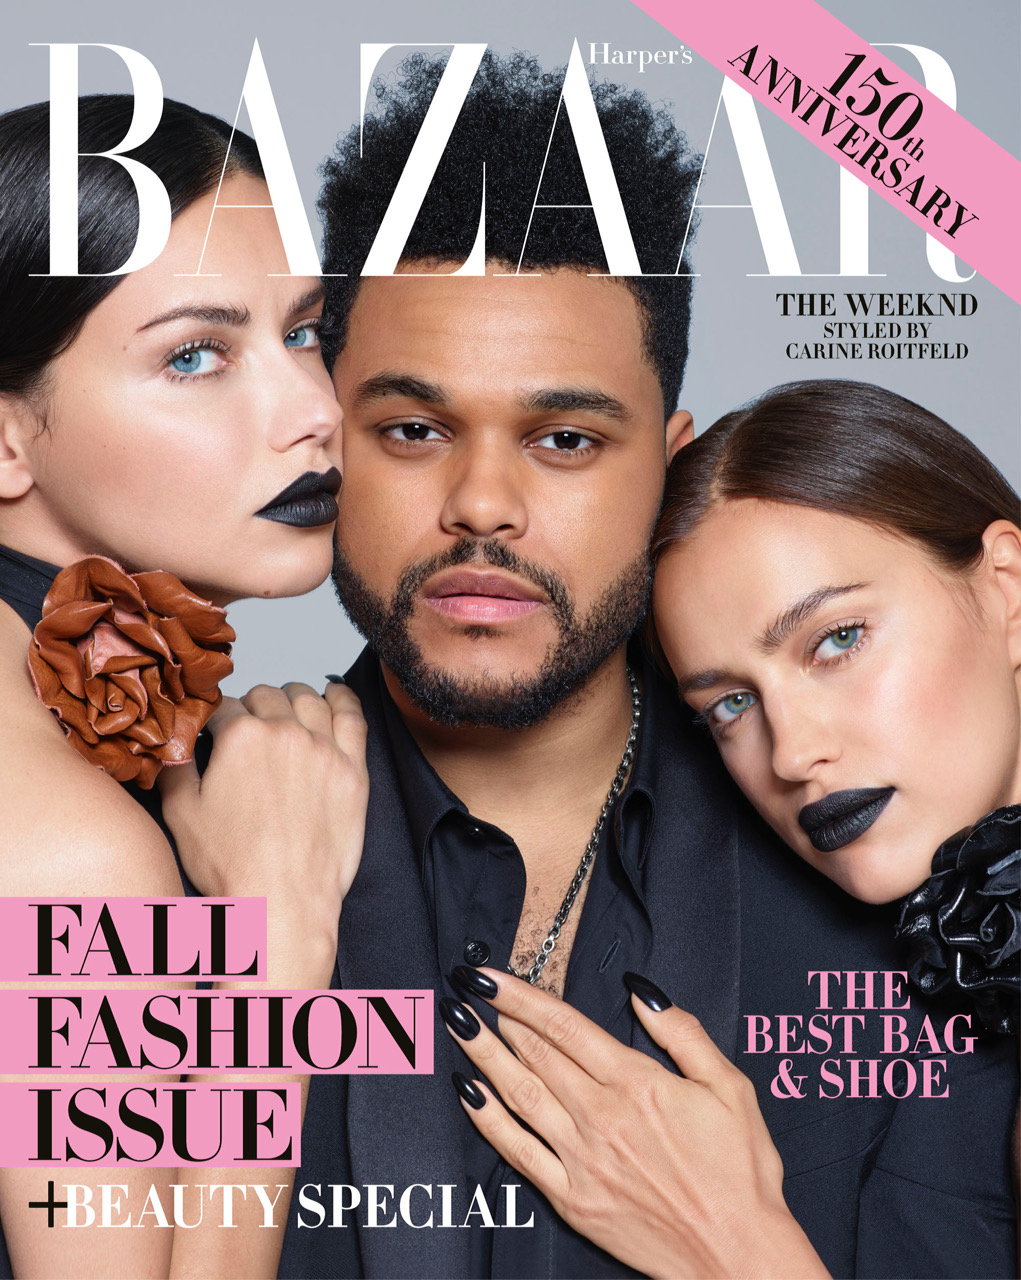 Harper's BAZAAR Sept 17 Cover